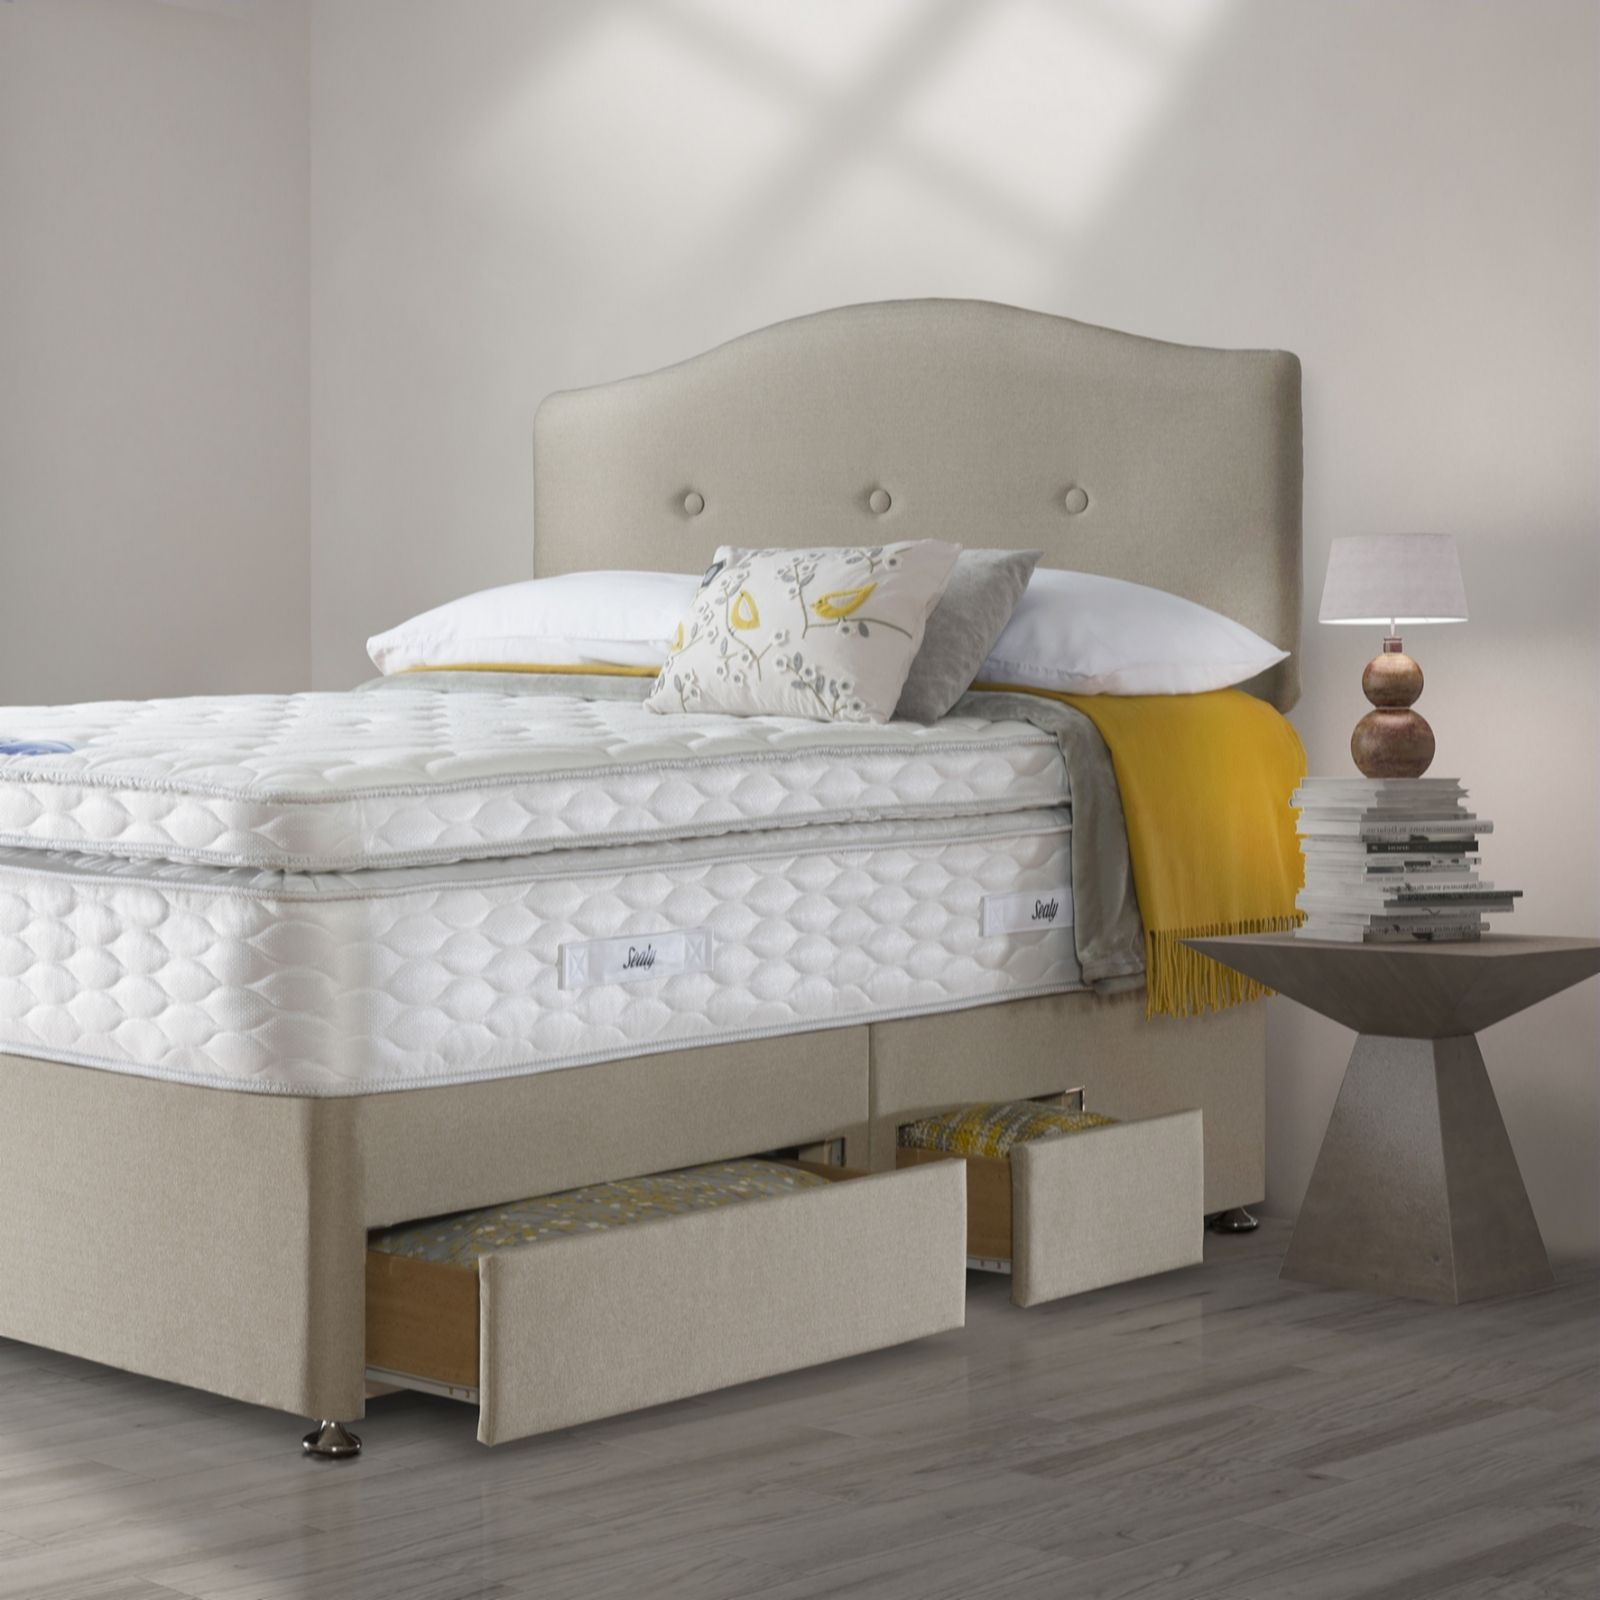 Divan Bed And Mattress Deals Sealy Posturepedic Pocket 1400 Springs Geltex Box Top Mattress